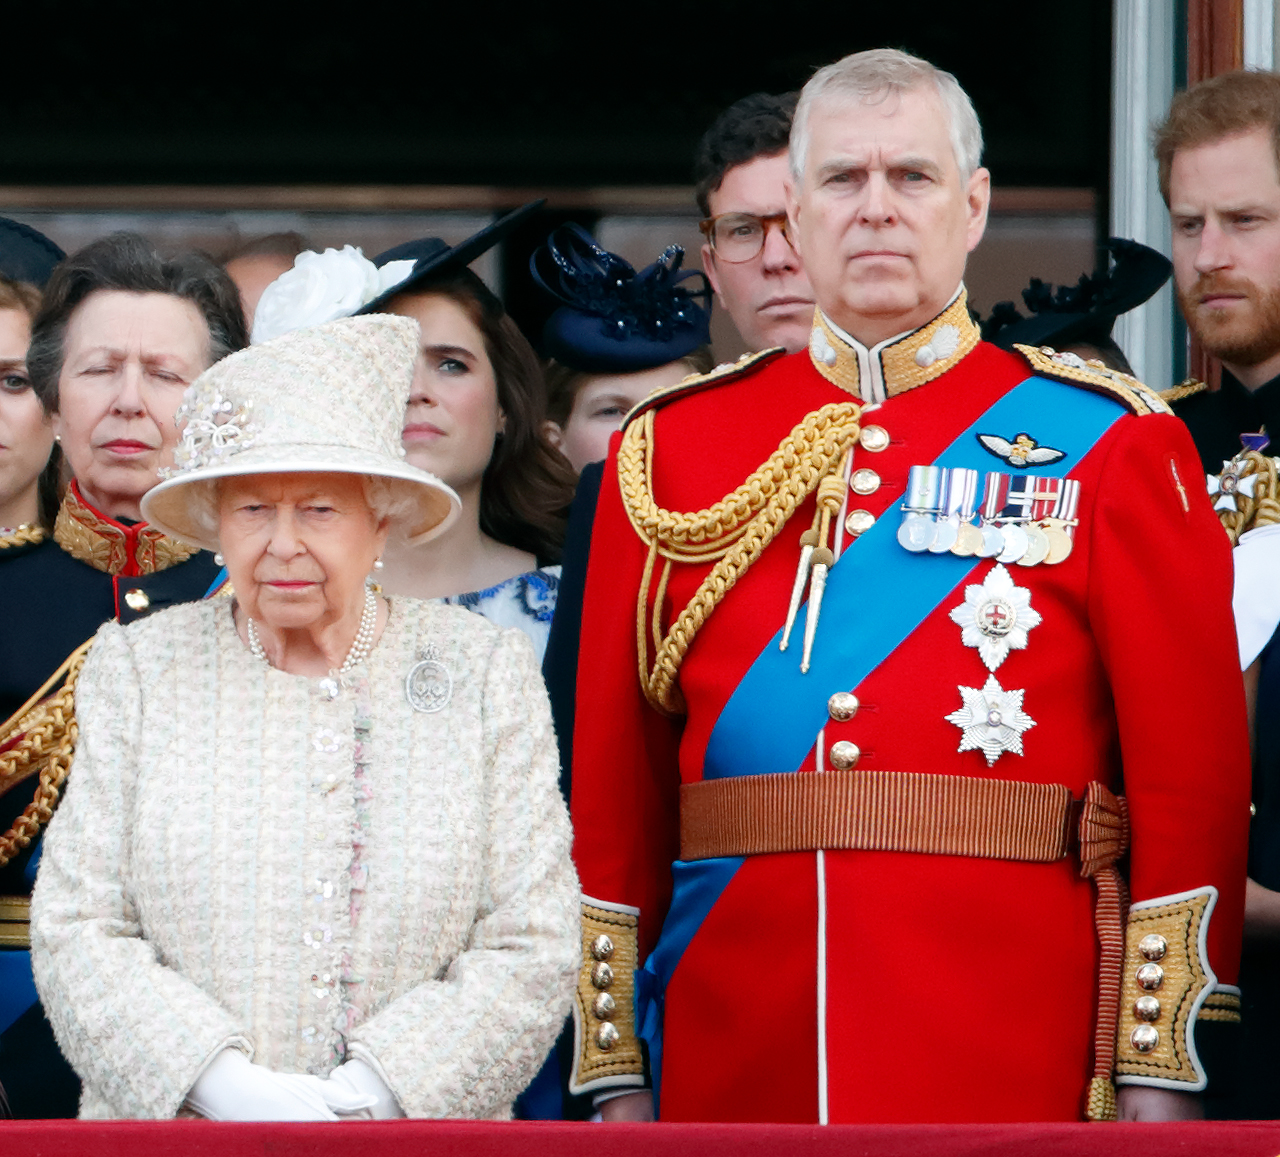 LONDON, UNITED KINGDOM - JUNE 08: (EMBARGOED FOR PUBLICATION IN UK NEWSPAPERS UNTIL 24 HOURS AFTER CREATE DATE AND TIME) Queen Elizabeth II and Prince Andrew, Duke of York watch a flypast from the balcony of Buckingham Palace during Trooping The Colour, the Queen's annual birthday parade, on June 8, 2019 in London, England. The annual ceremony involving over 1400 guardsmen and cavalry, is believed to have first been performed during the reign of King Charles II. The parade marks the official birthday of the Sovereign, although the Queen's actual birthday is on April 21st. (Photo by Max Mumby/Indigo/Getty Images)